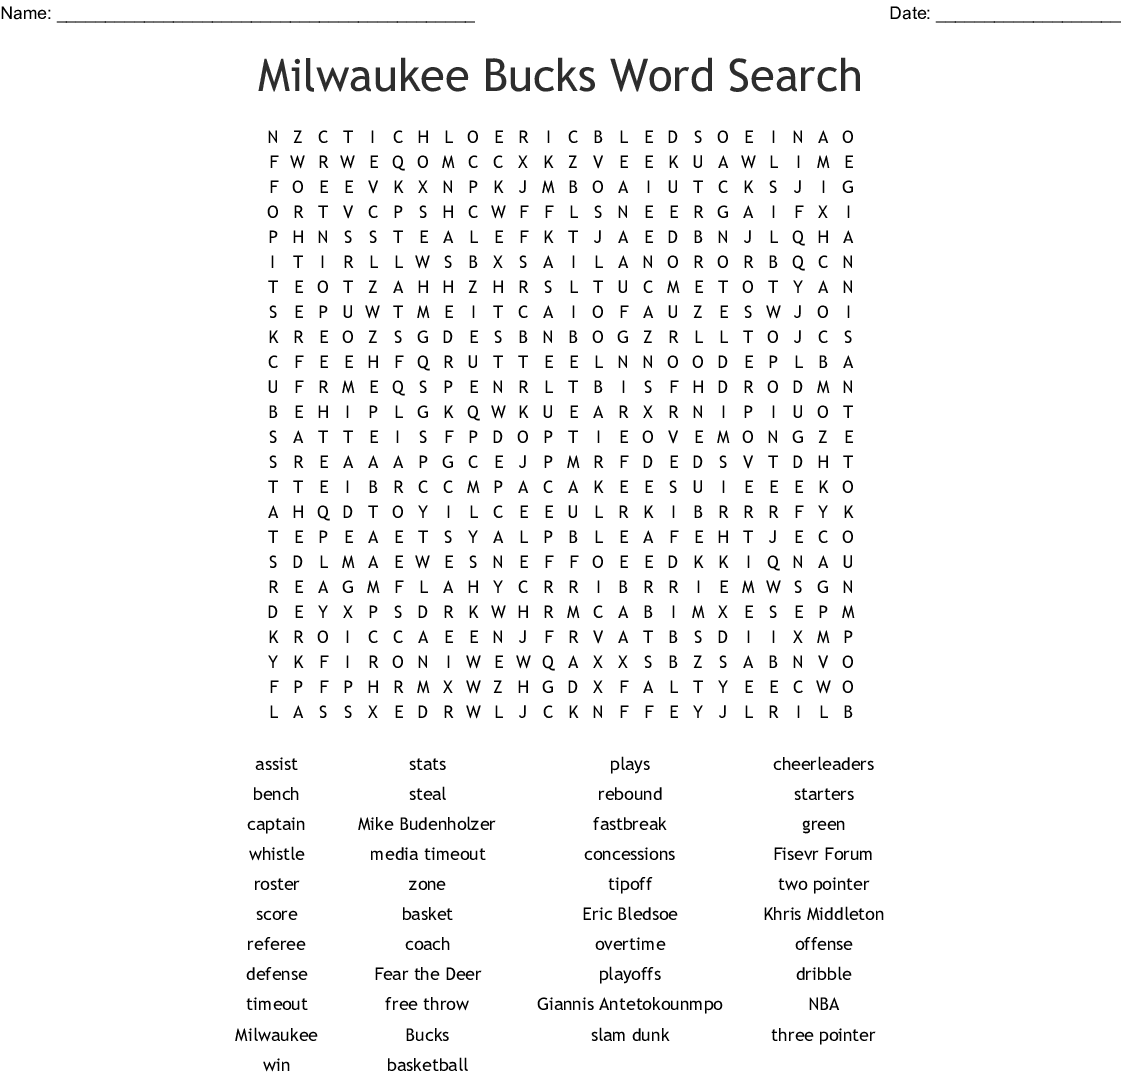 March Madness Word Serach Word Search - WordMint